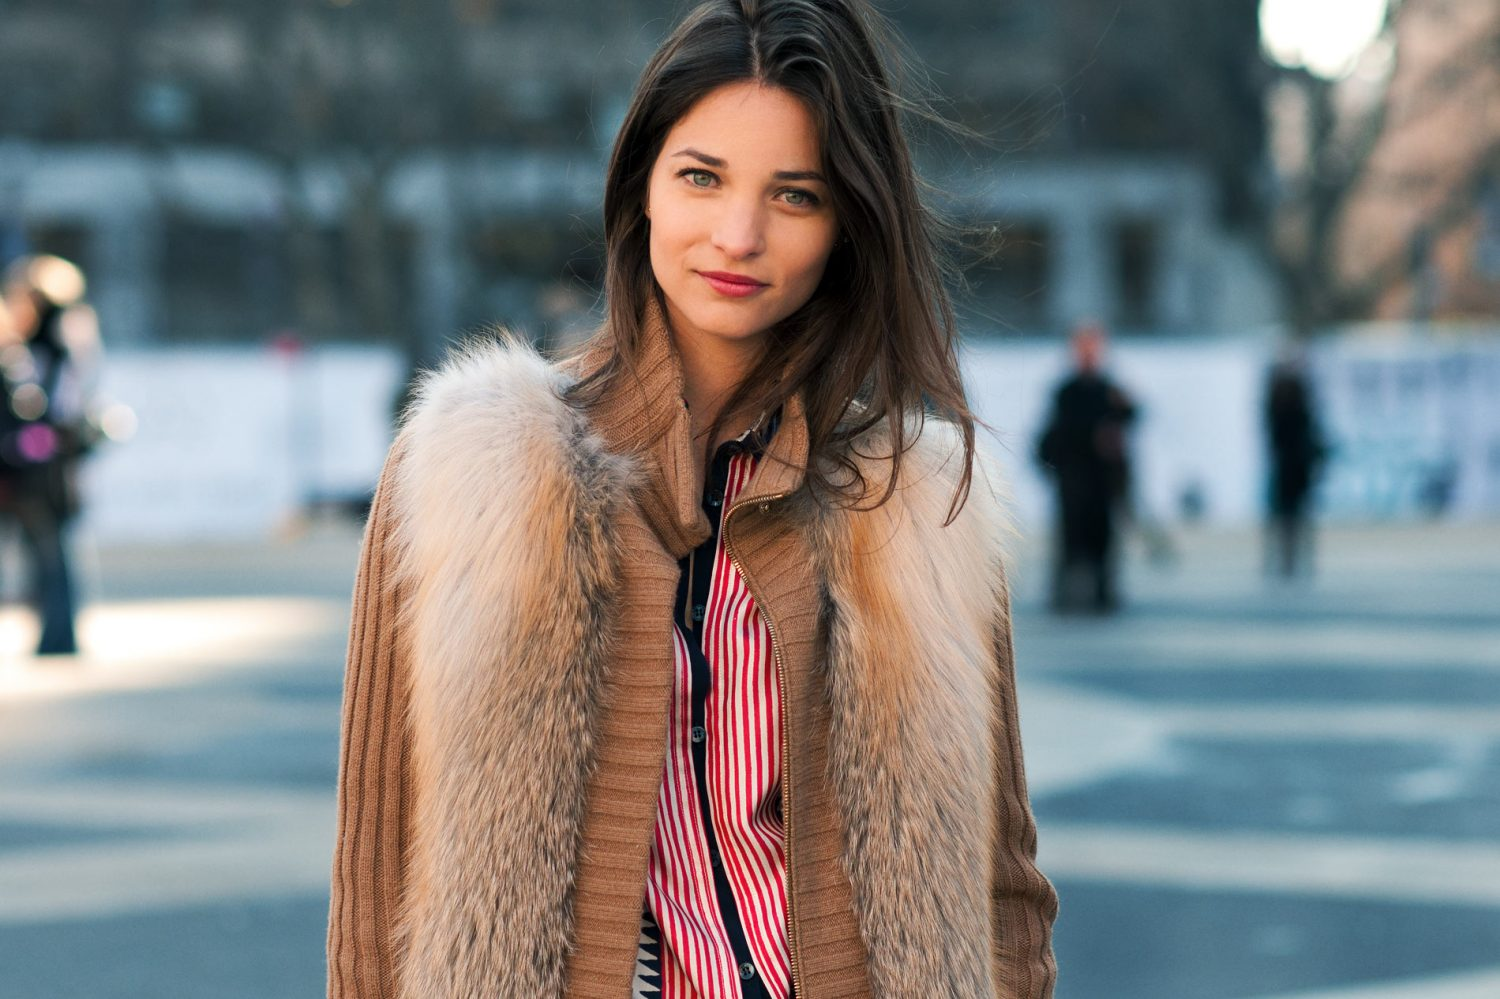 Maria Dueñas Jacobs at New York Fashion Week Fall/Winter 2012